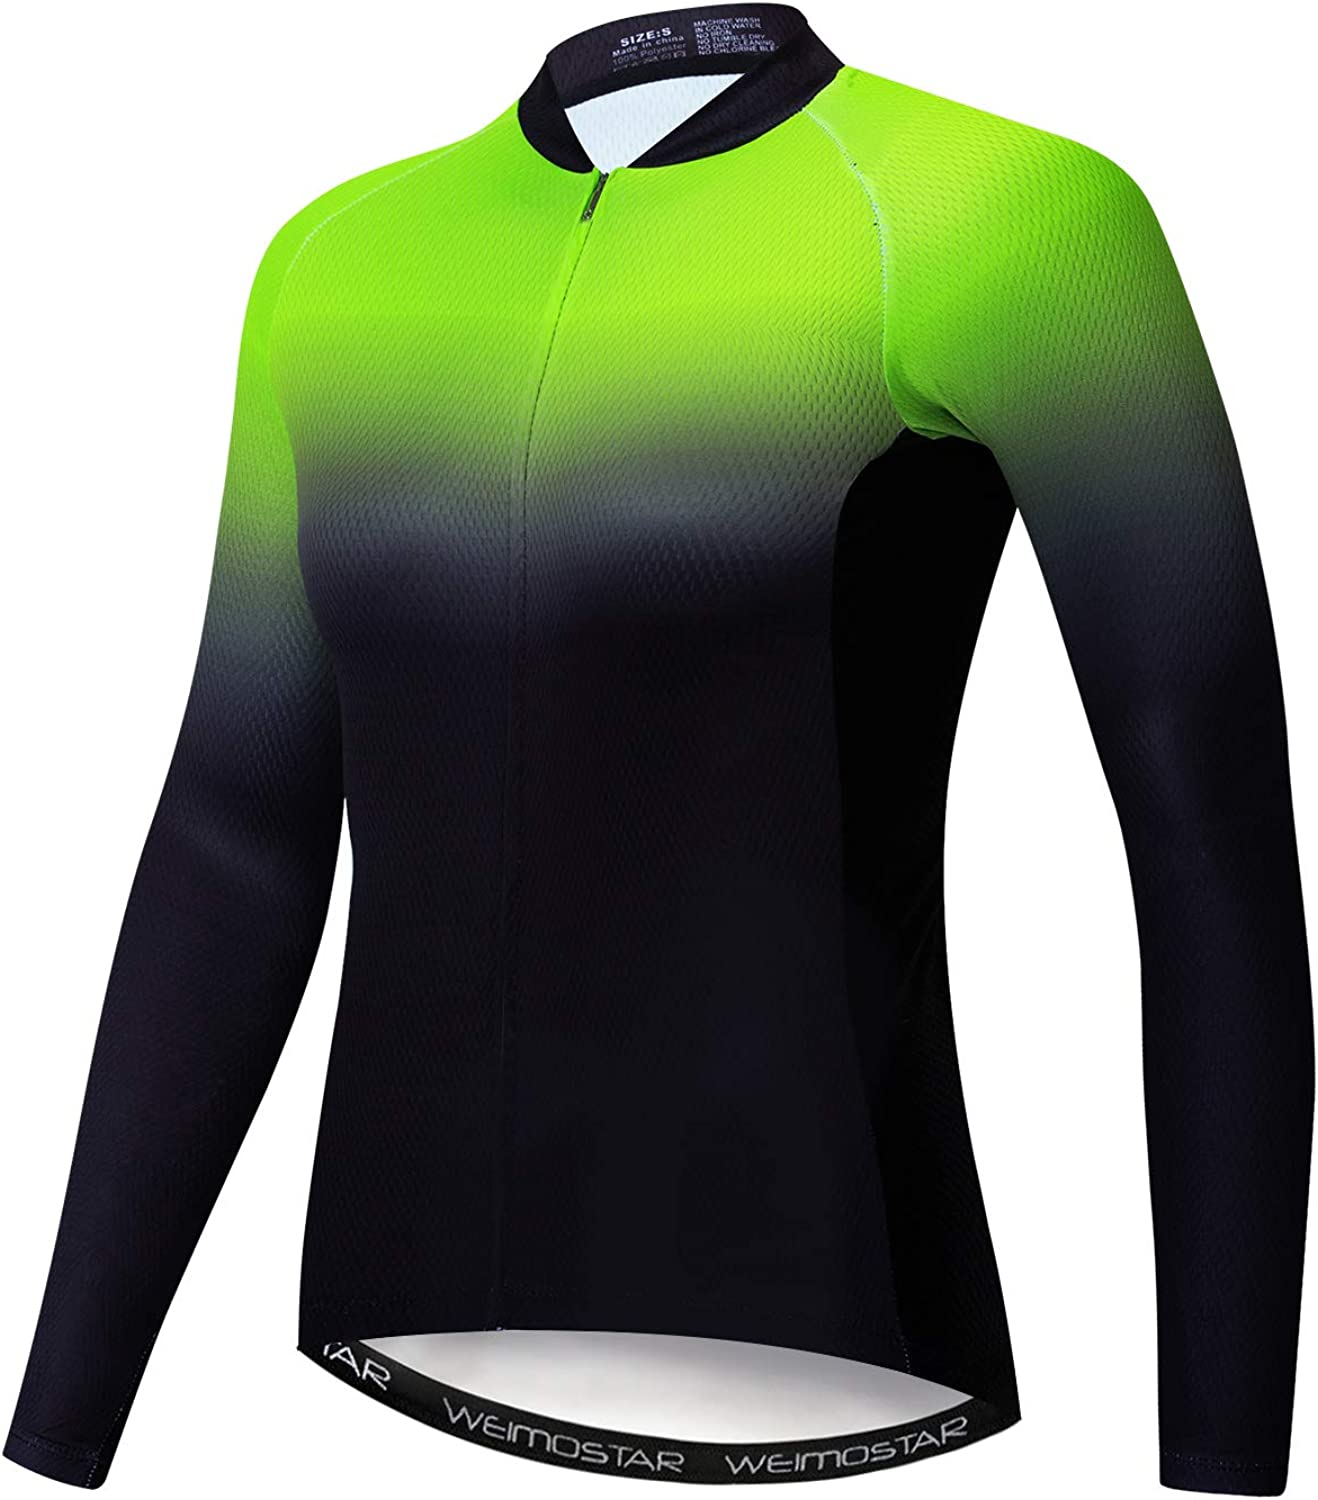 Weimostar Womens Cycling Jersey Long Sleeved Bike Jersey,Comfortable Quick Dry